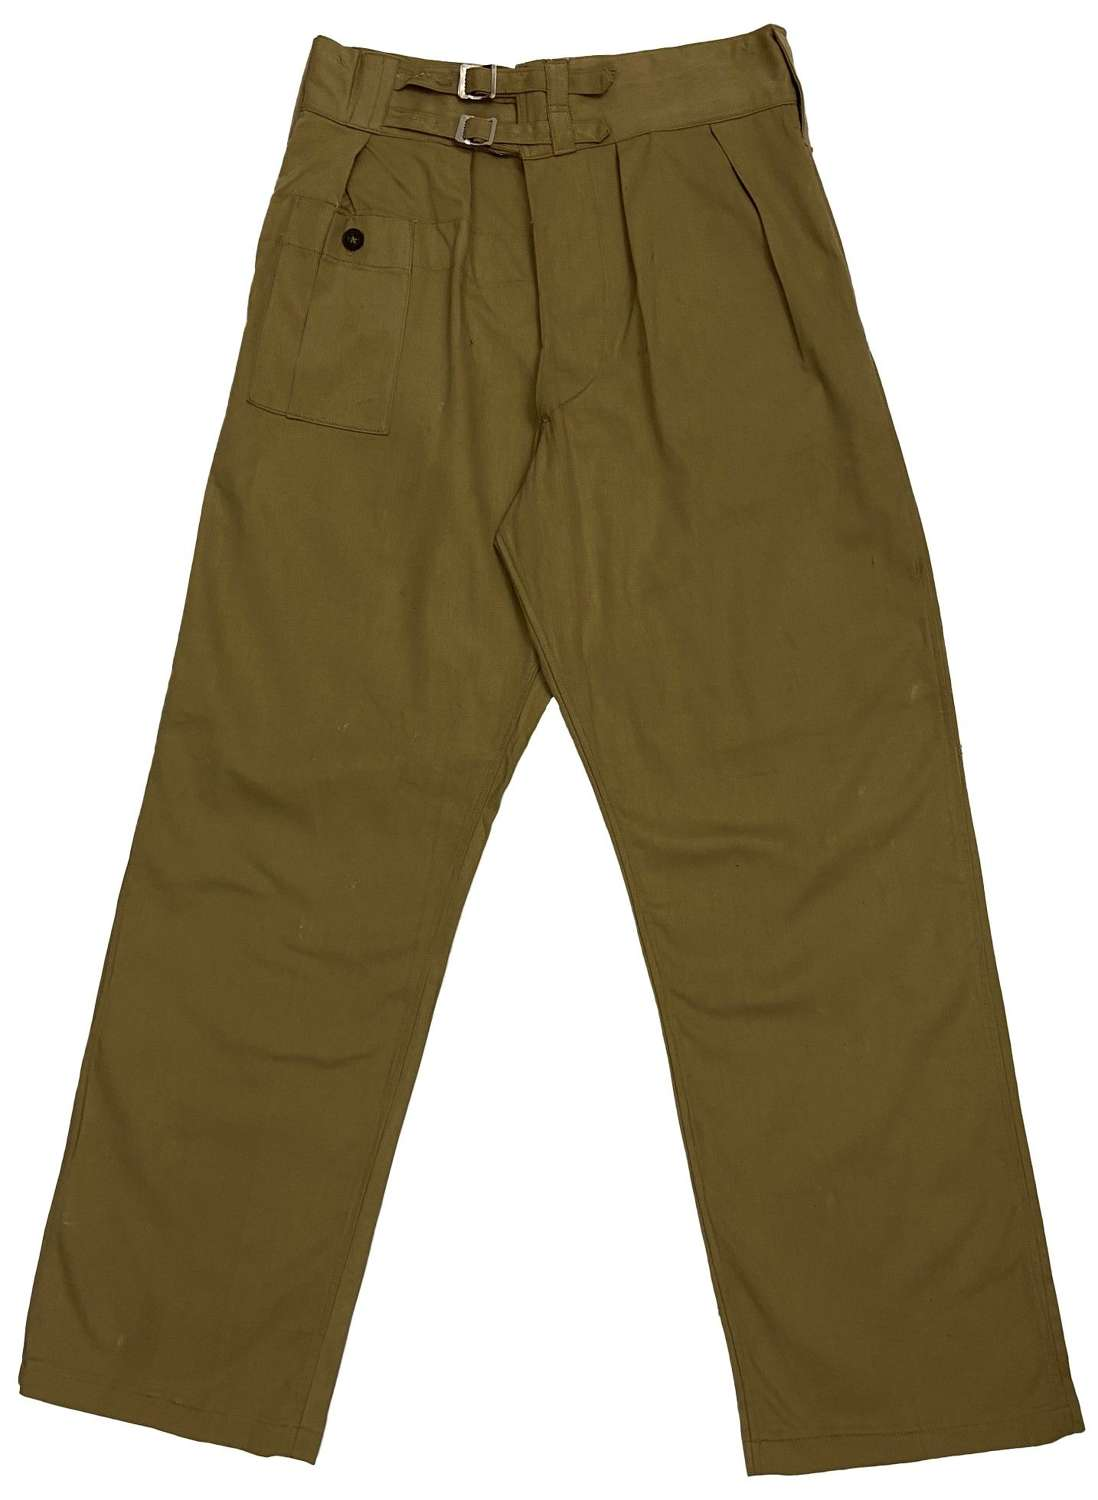 Original 1945 Dated Indian Made British Army Khaki Drill BD Trousers